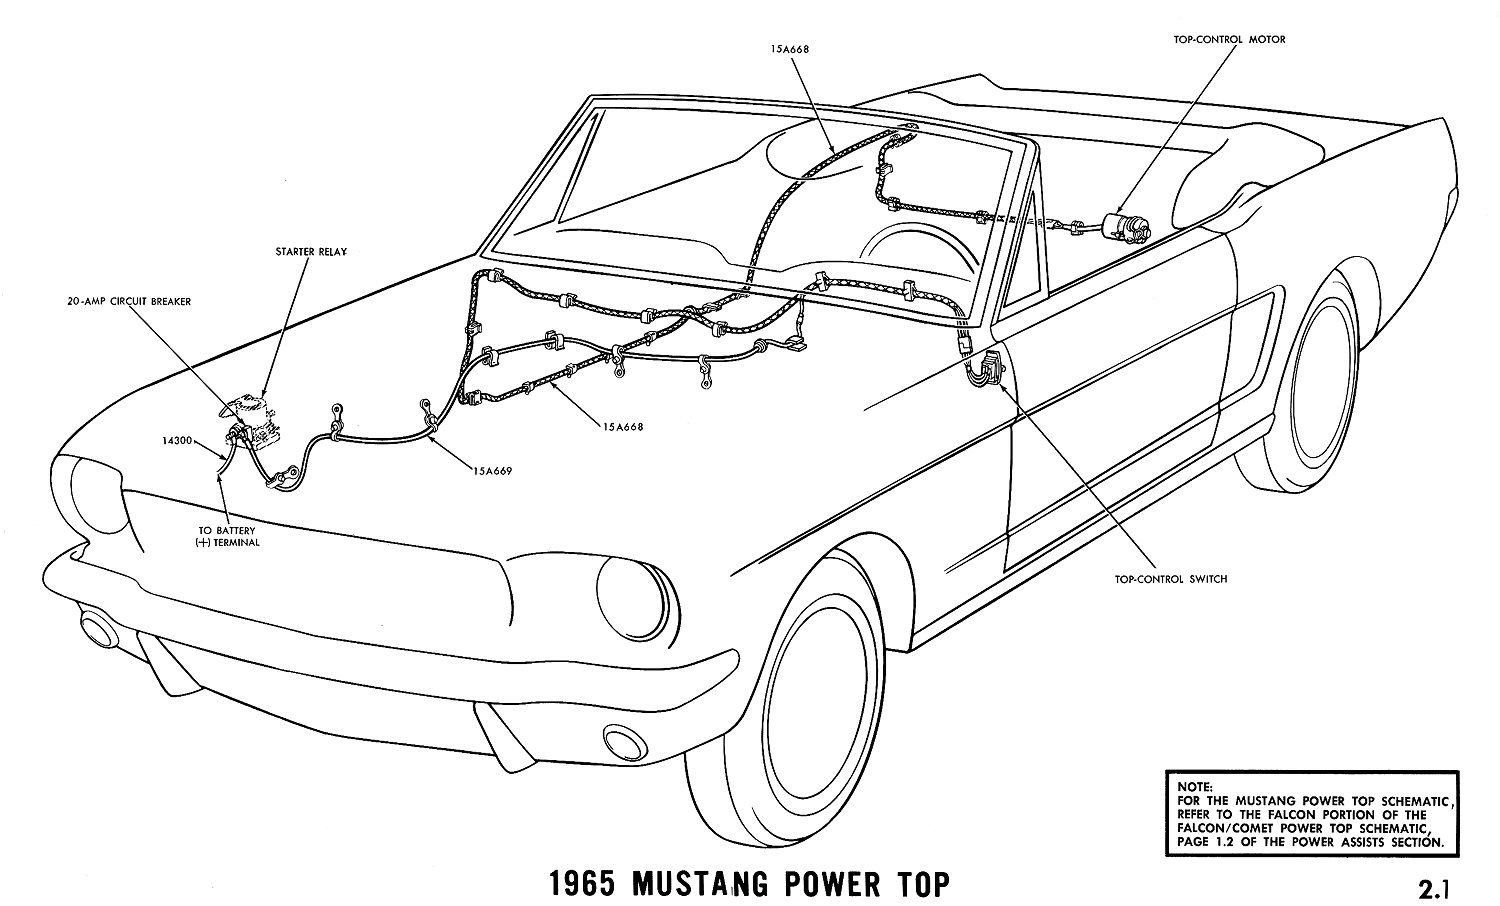 1965 Mustang Wiring Diagrams - Average Joe Restoration on 1971 mustang wiring schematic, 2001 mustang wiring schematic, 1965 mustang steering schematic, 1964 mustang wiring schematic, 2005 mustang wiring schematic, 1967 mustang wiring schematic, 1968 mustang wiring schematic, 1957 chevrolet truck wiring schematic, 1967 gto wiring schematic, 2000 mustang wiring schematic, ford wiring schematic, 2006 mustang wiring schematic, 1967 camaro wiring schematic, 1966 mustang wiring schematic, 1970 mustang wiring schematic, 2008 mustang wiring schematic, 66 mustang wiring schematic, 65 mustang wiring schematic, 1969 camaro wiring schematic, 2002 mustang wiring schematic,